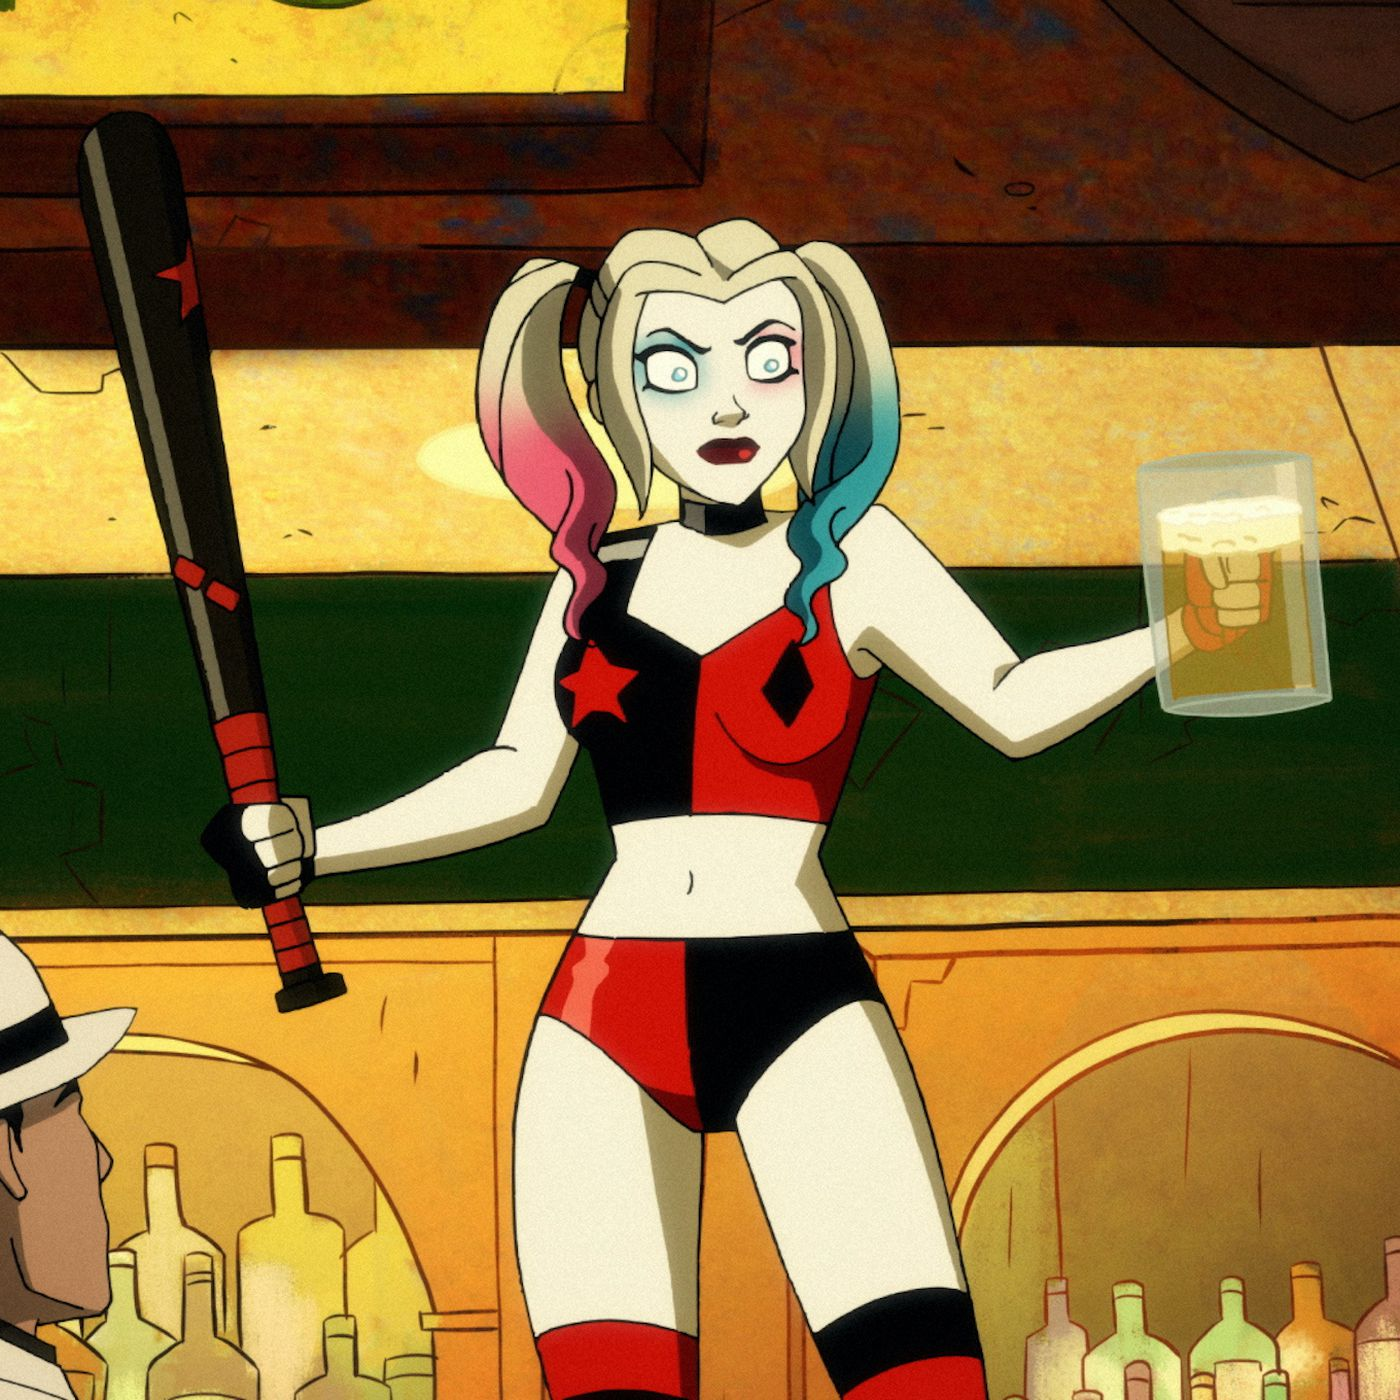 Dc S Harley Quinn Series Kills A Lot Of Characters For A Superhero Show Polygon